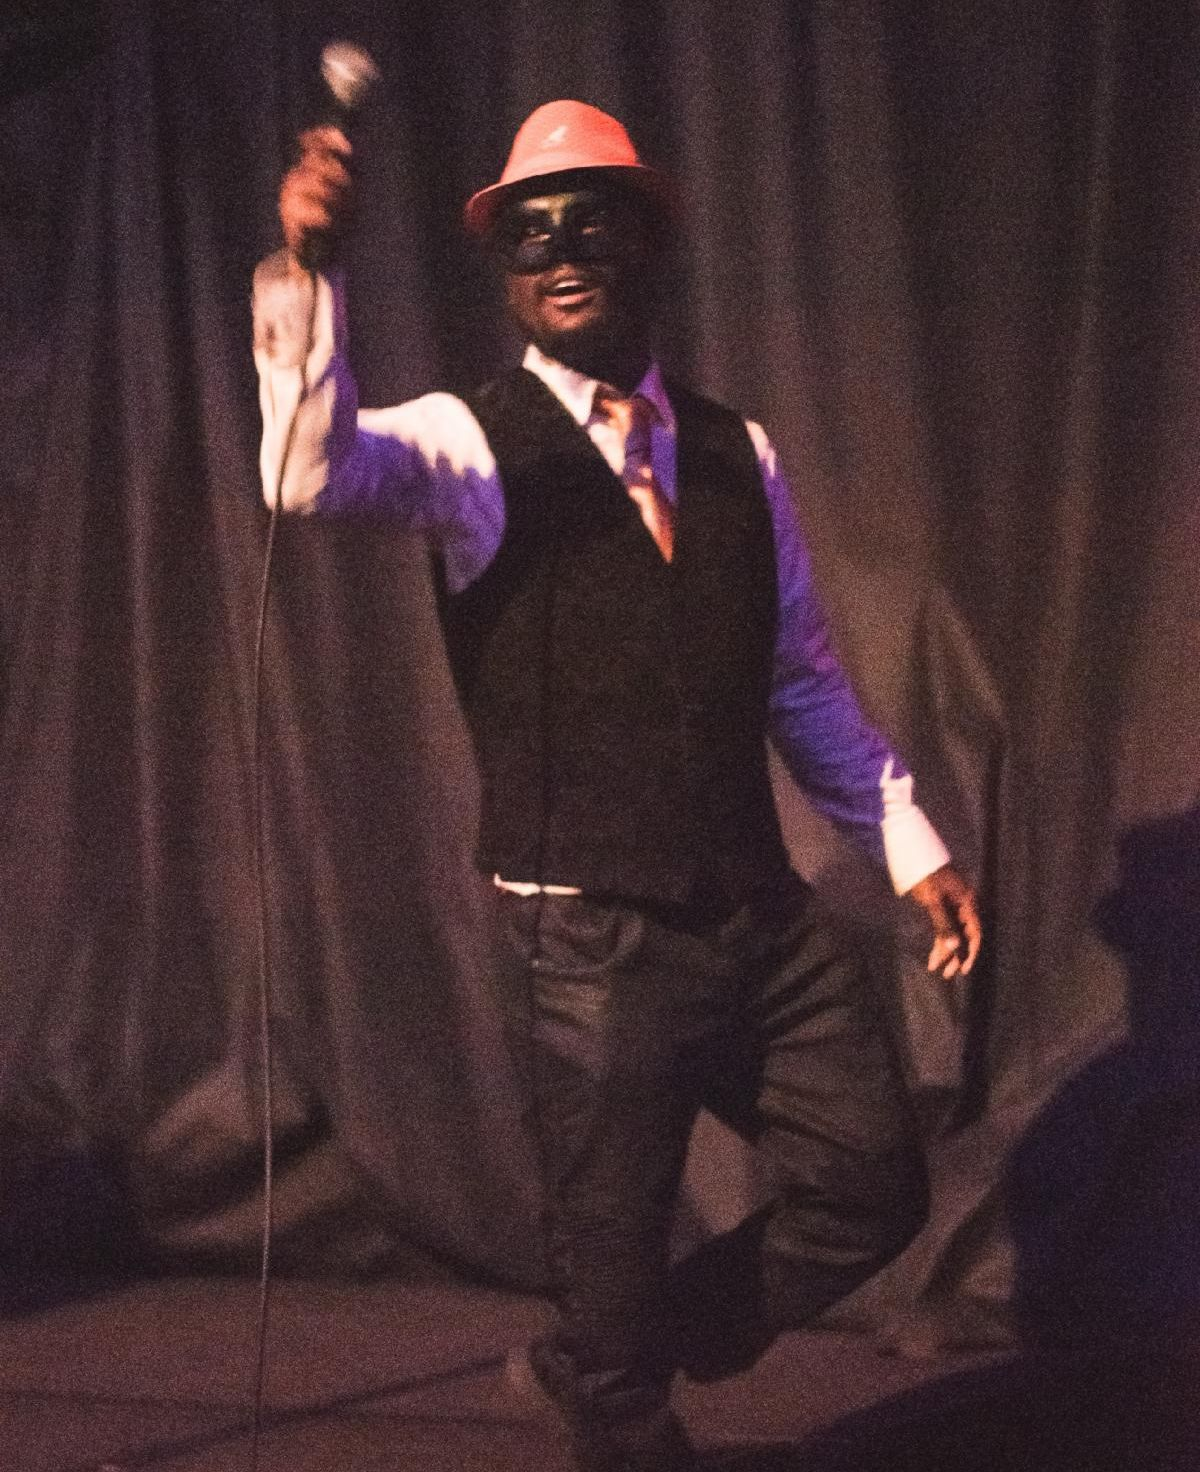 An onstage performer dressed in a suit, wearing a hat, and a black mask for the eyes holds a microphone high in the air.